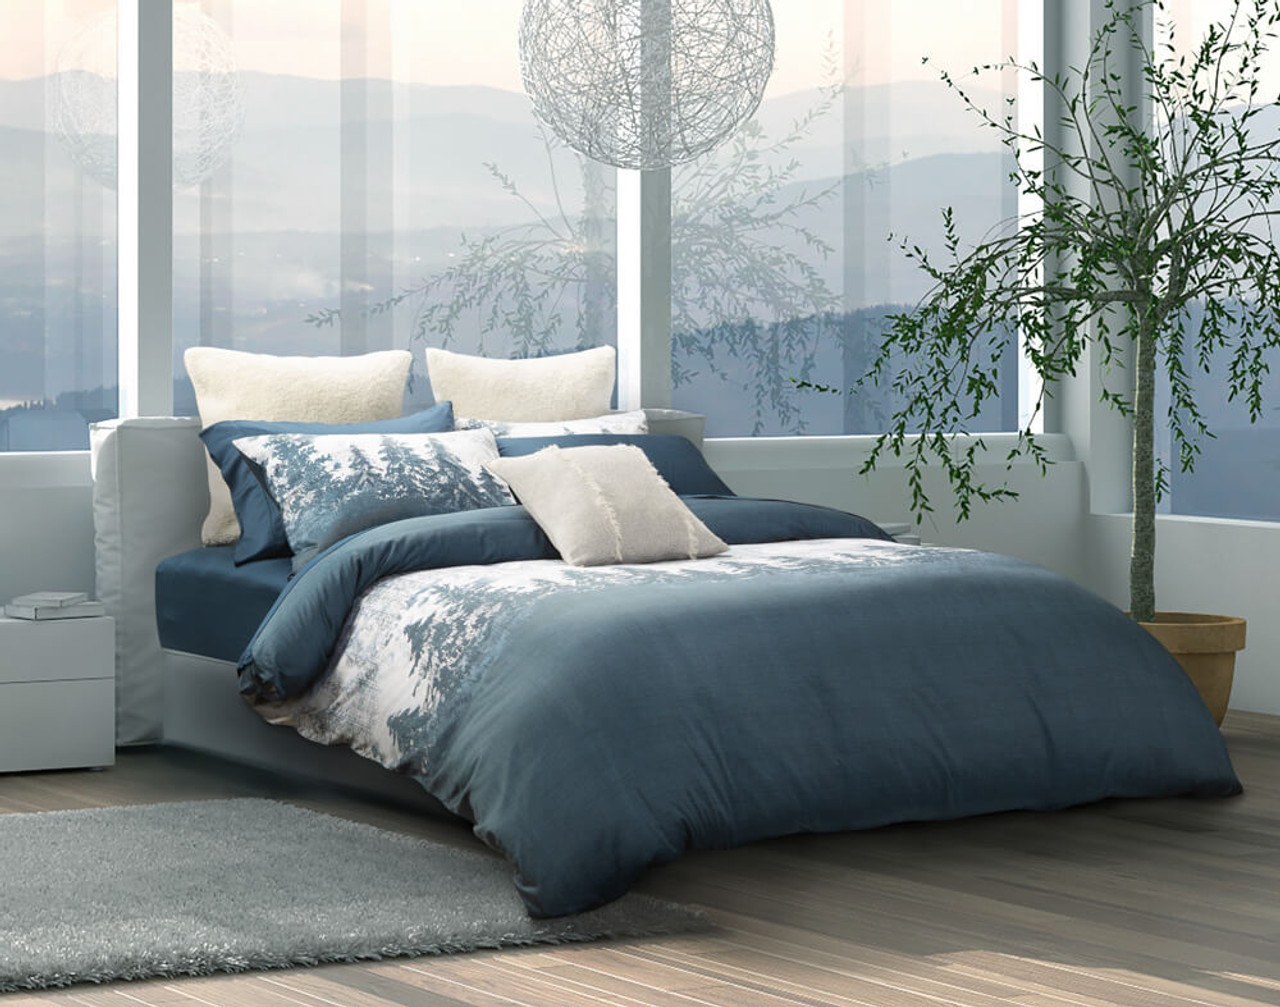 Side view of our Alps Duvet Cover in a bright bedroom near windows.